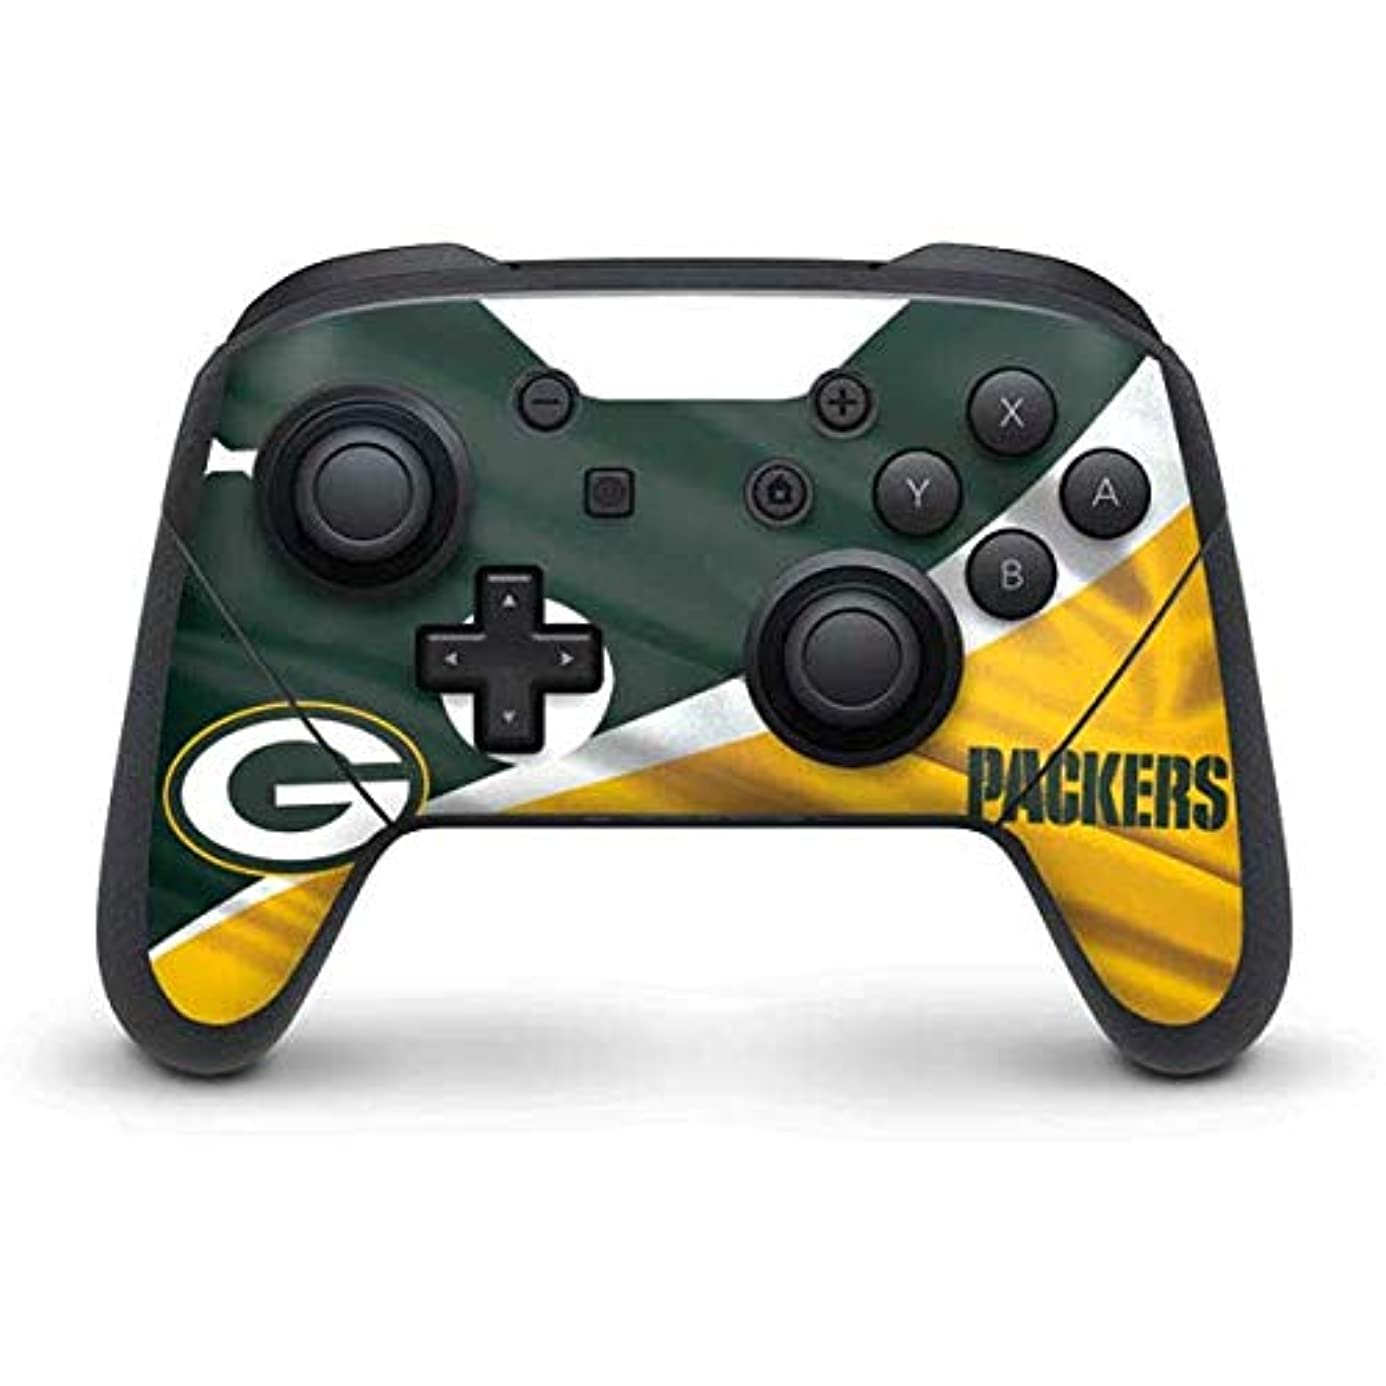 Skinit Green Bay Packers Nintendo Switch Pro Controller Skin - Officially Licensed NFL Gaming Decal - Ultra Thin, Lightweight Vinyl Decal Protection